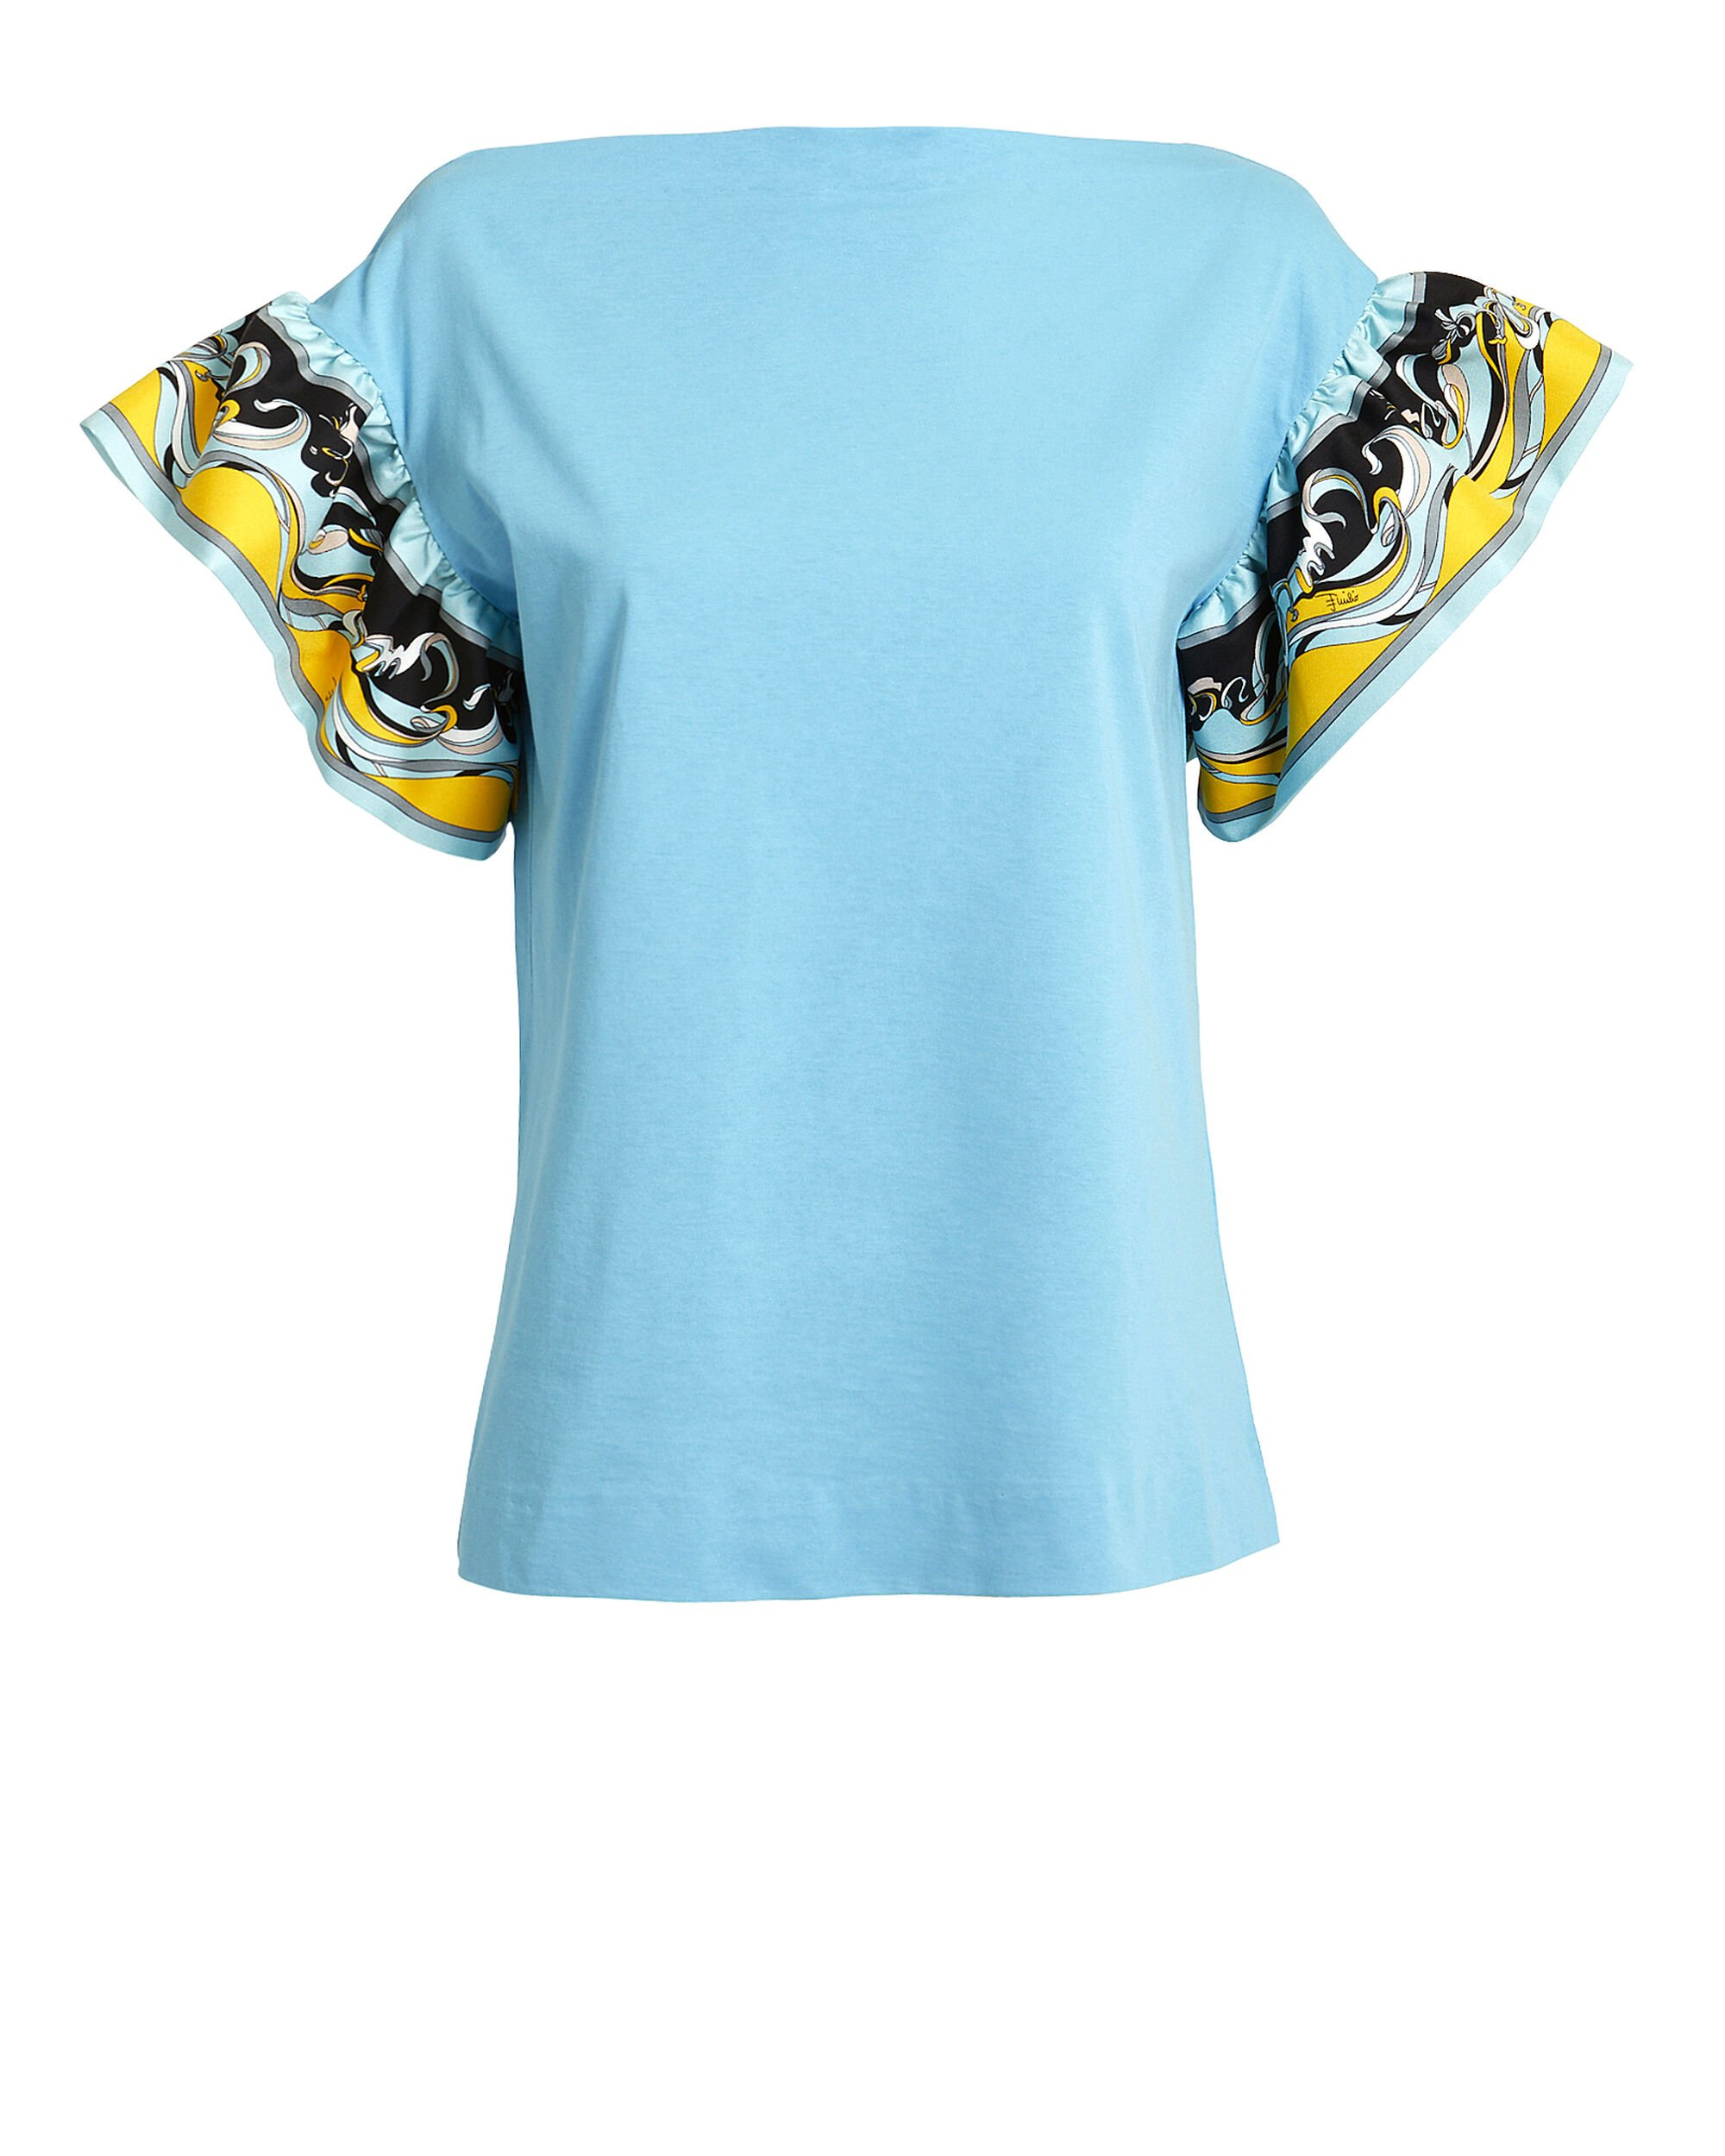 Printed Ruffle Sleeve T-Shirt, BLUE, hi-res